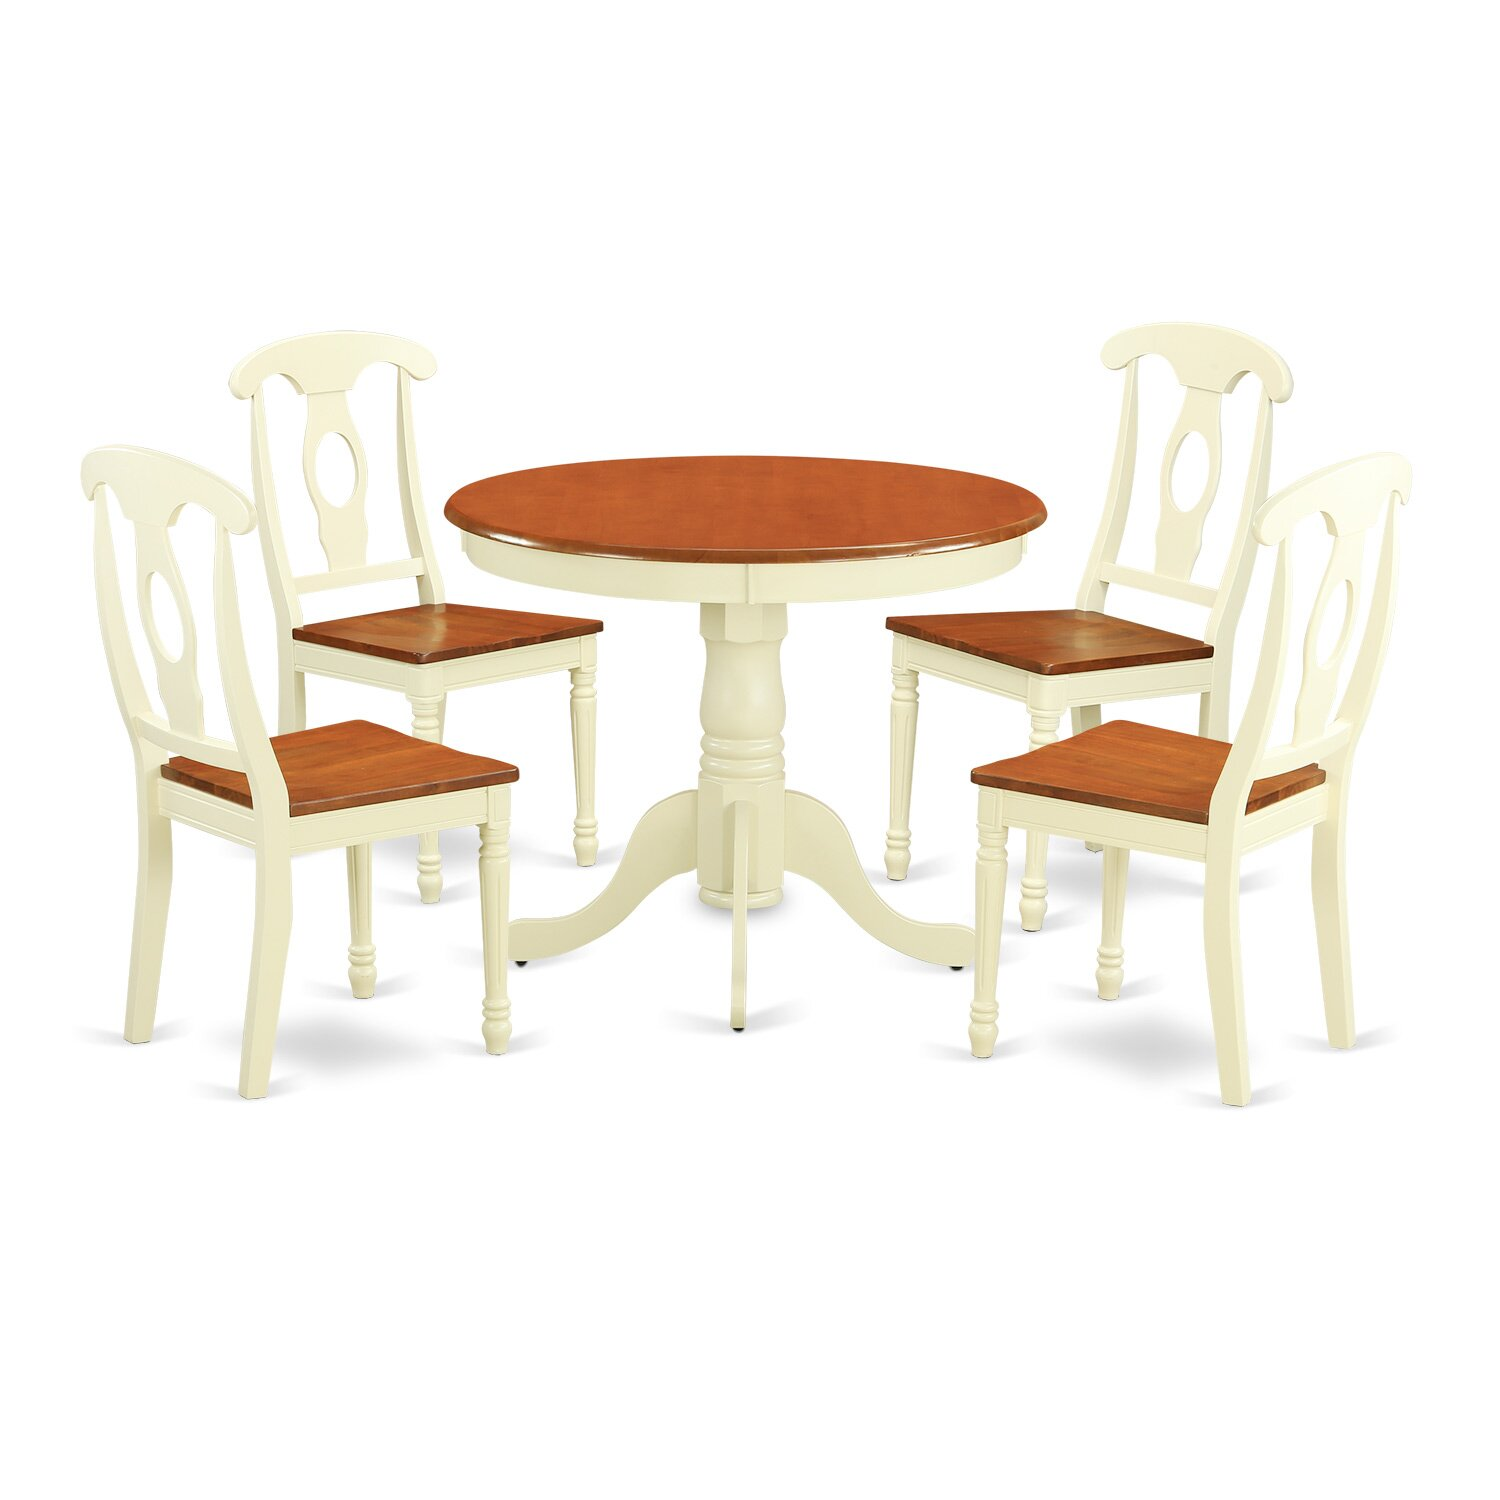 East west 5 piece dining set wayfair for Kitchenette sets furniture